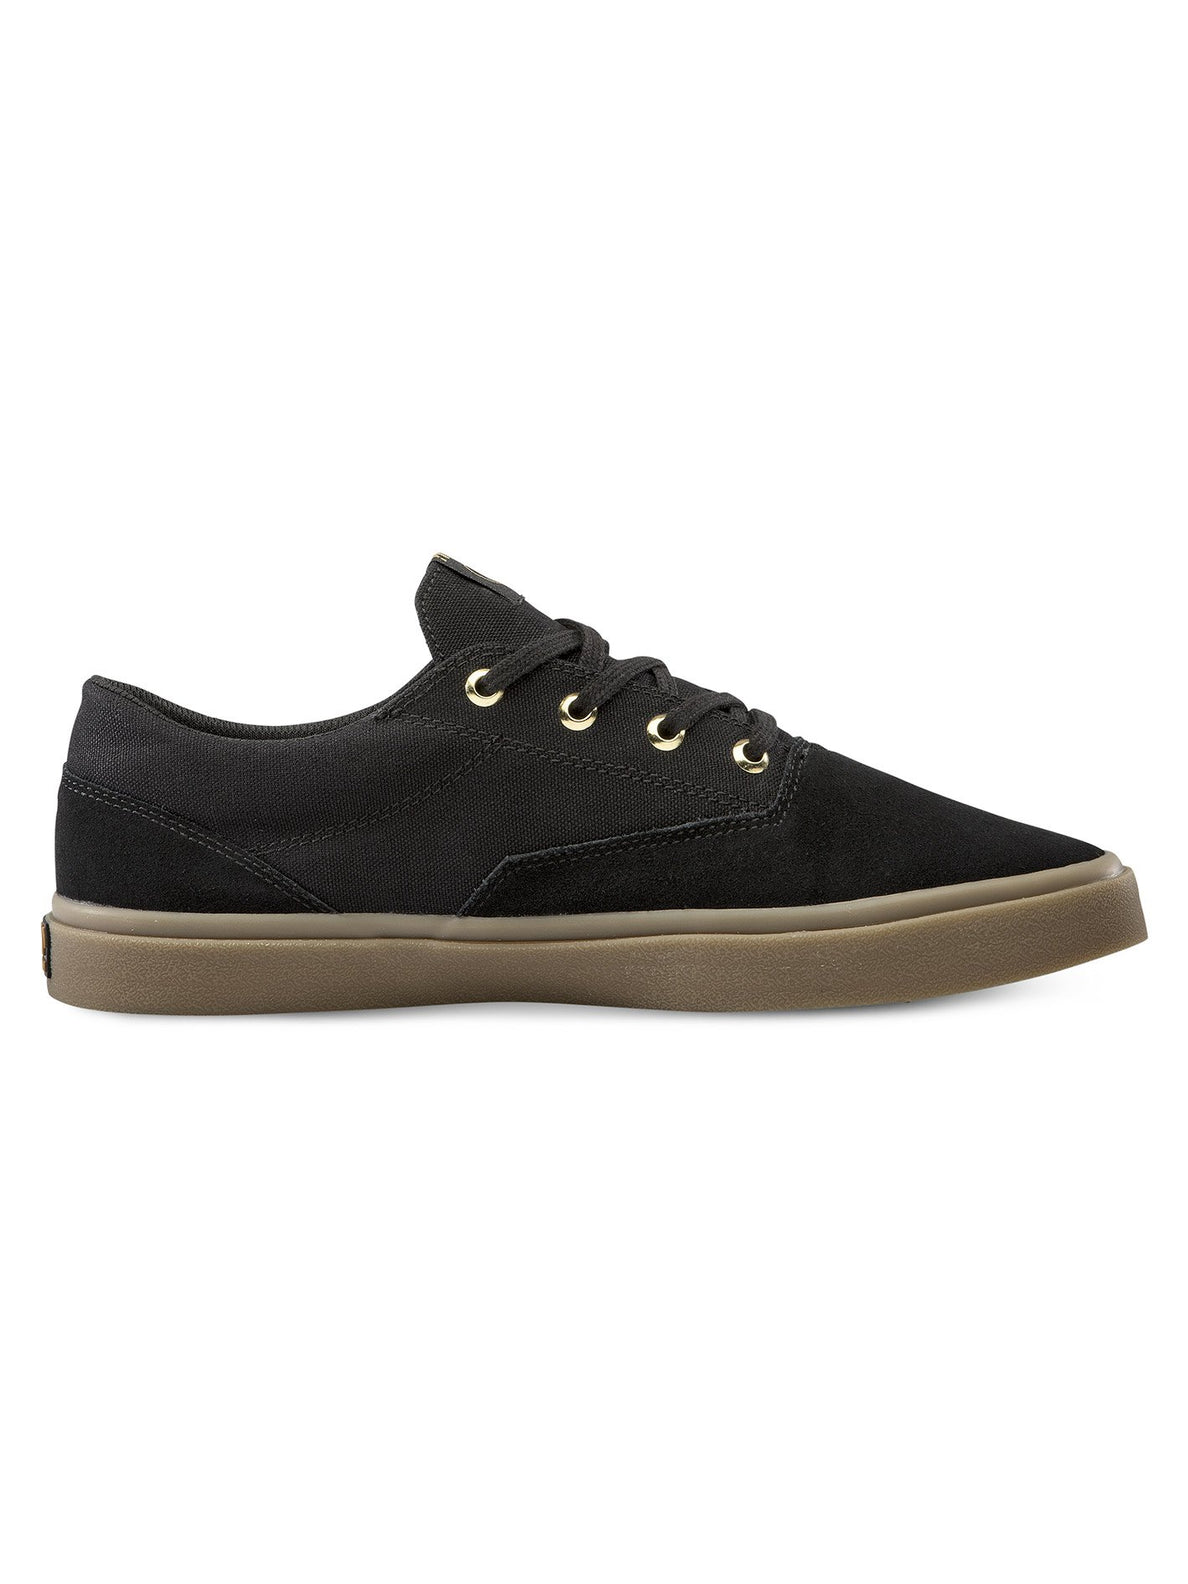 Draw Lo Suede Shoe - Black Out (V4011899_BKO) [2]